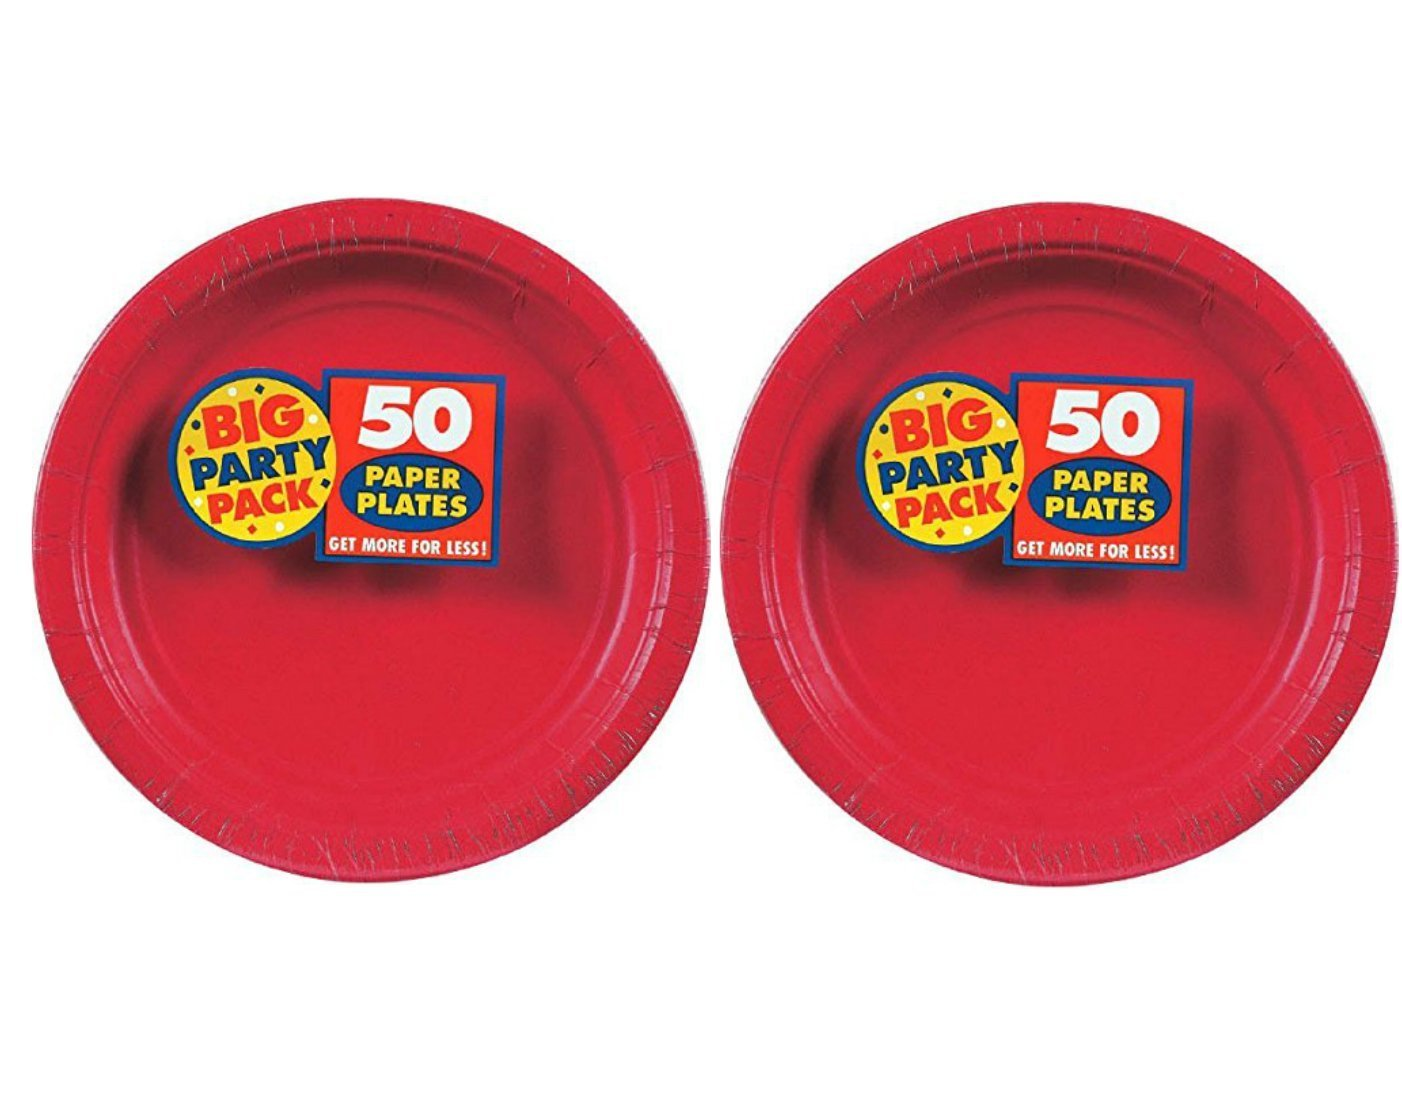 Apple Red Dinner Paper Plates Big Party Pack, 50 Ct. by amscan